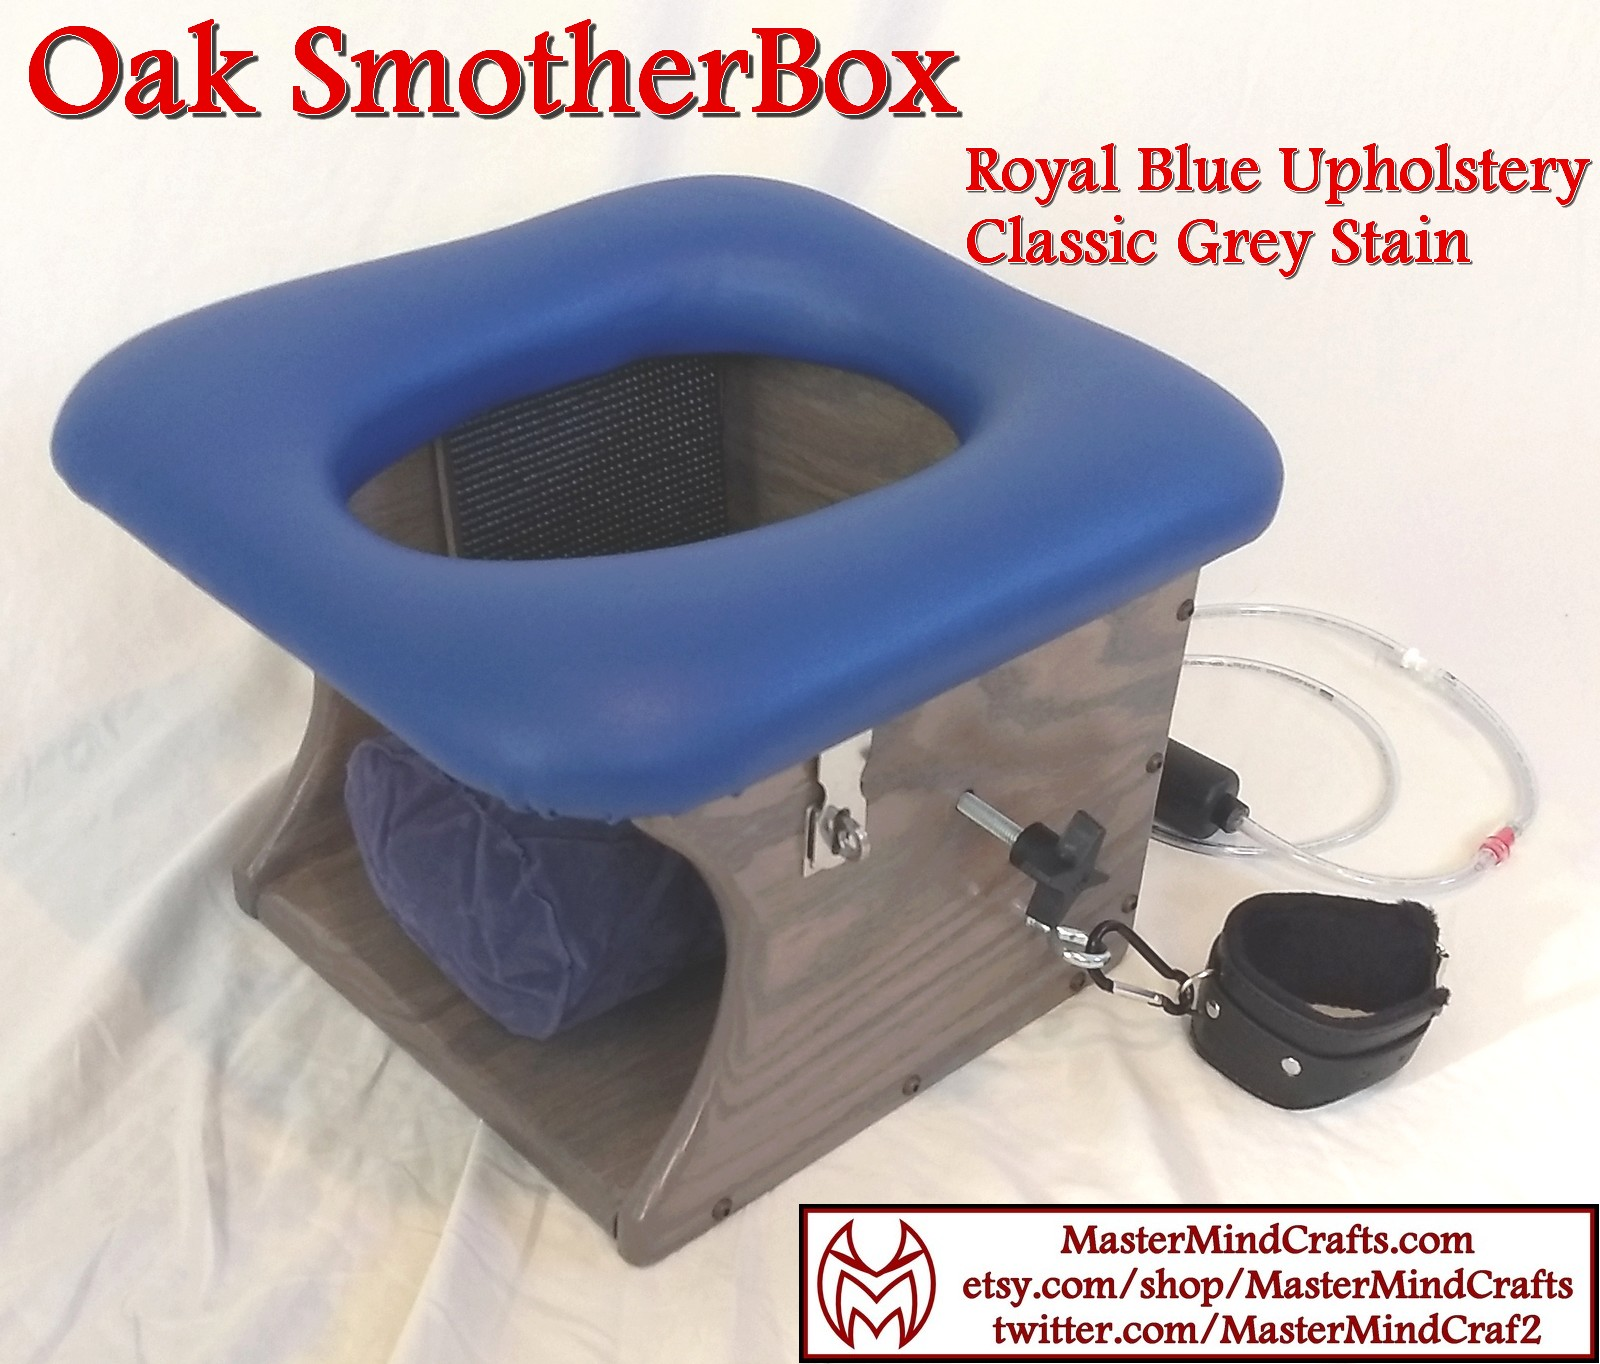 The SmotherBox   mastermind-crafts